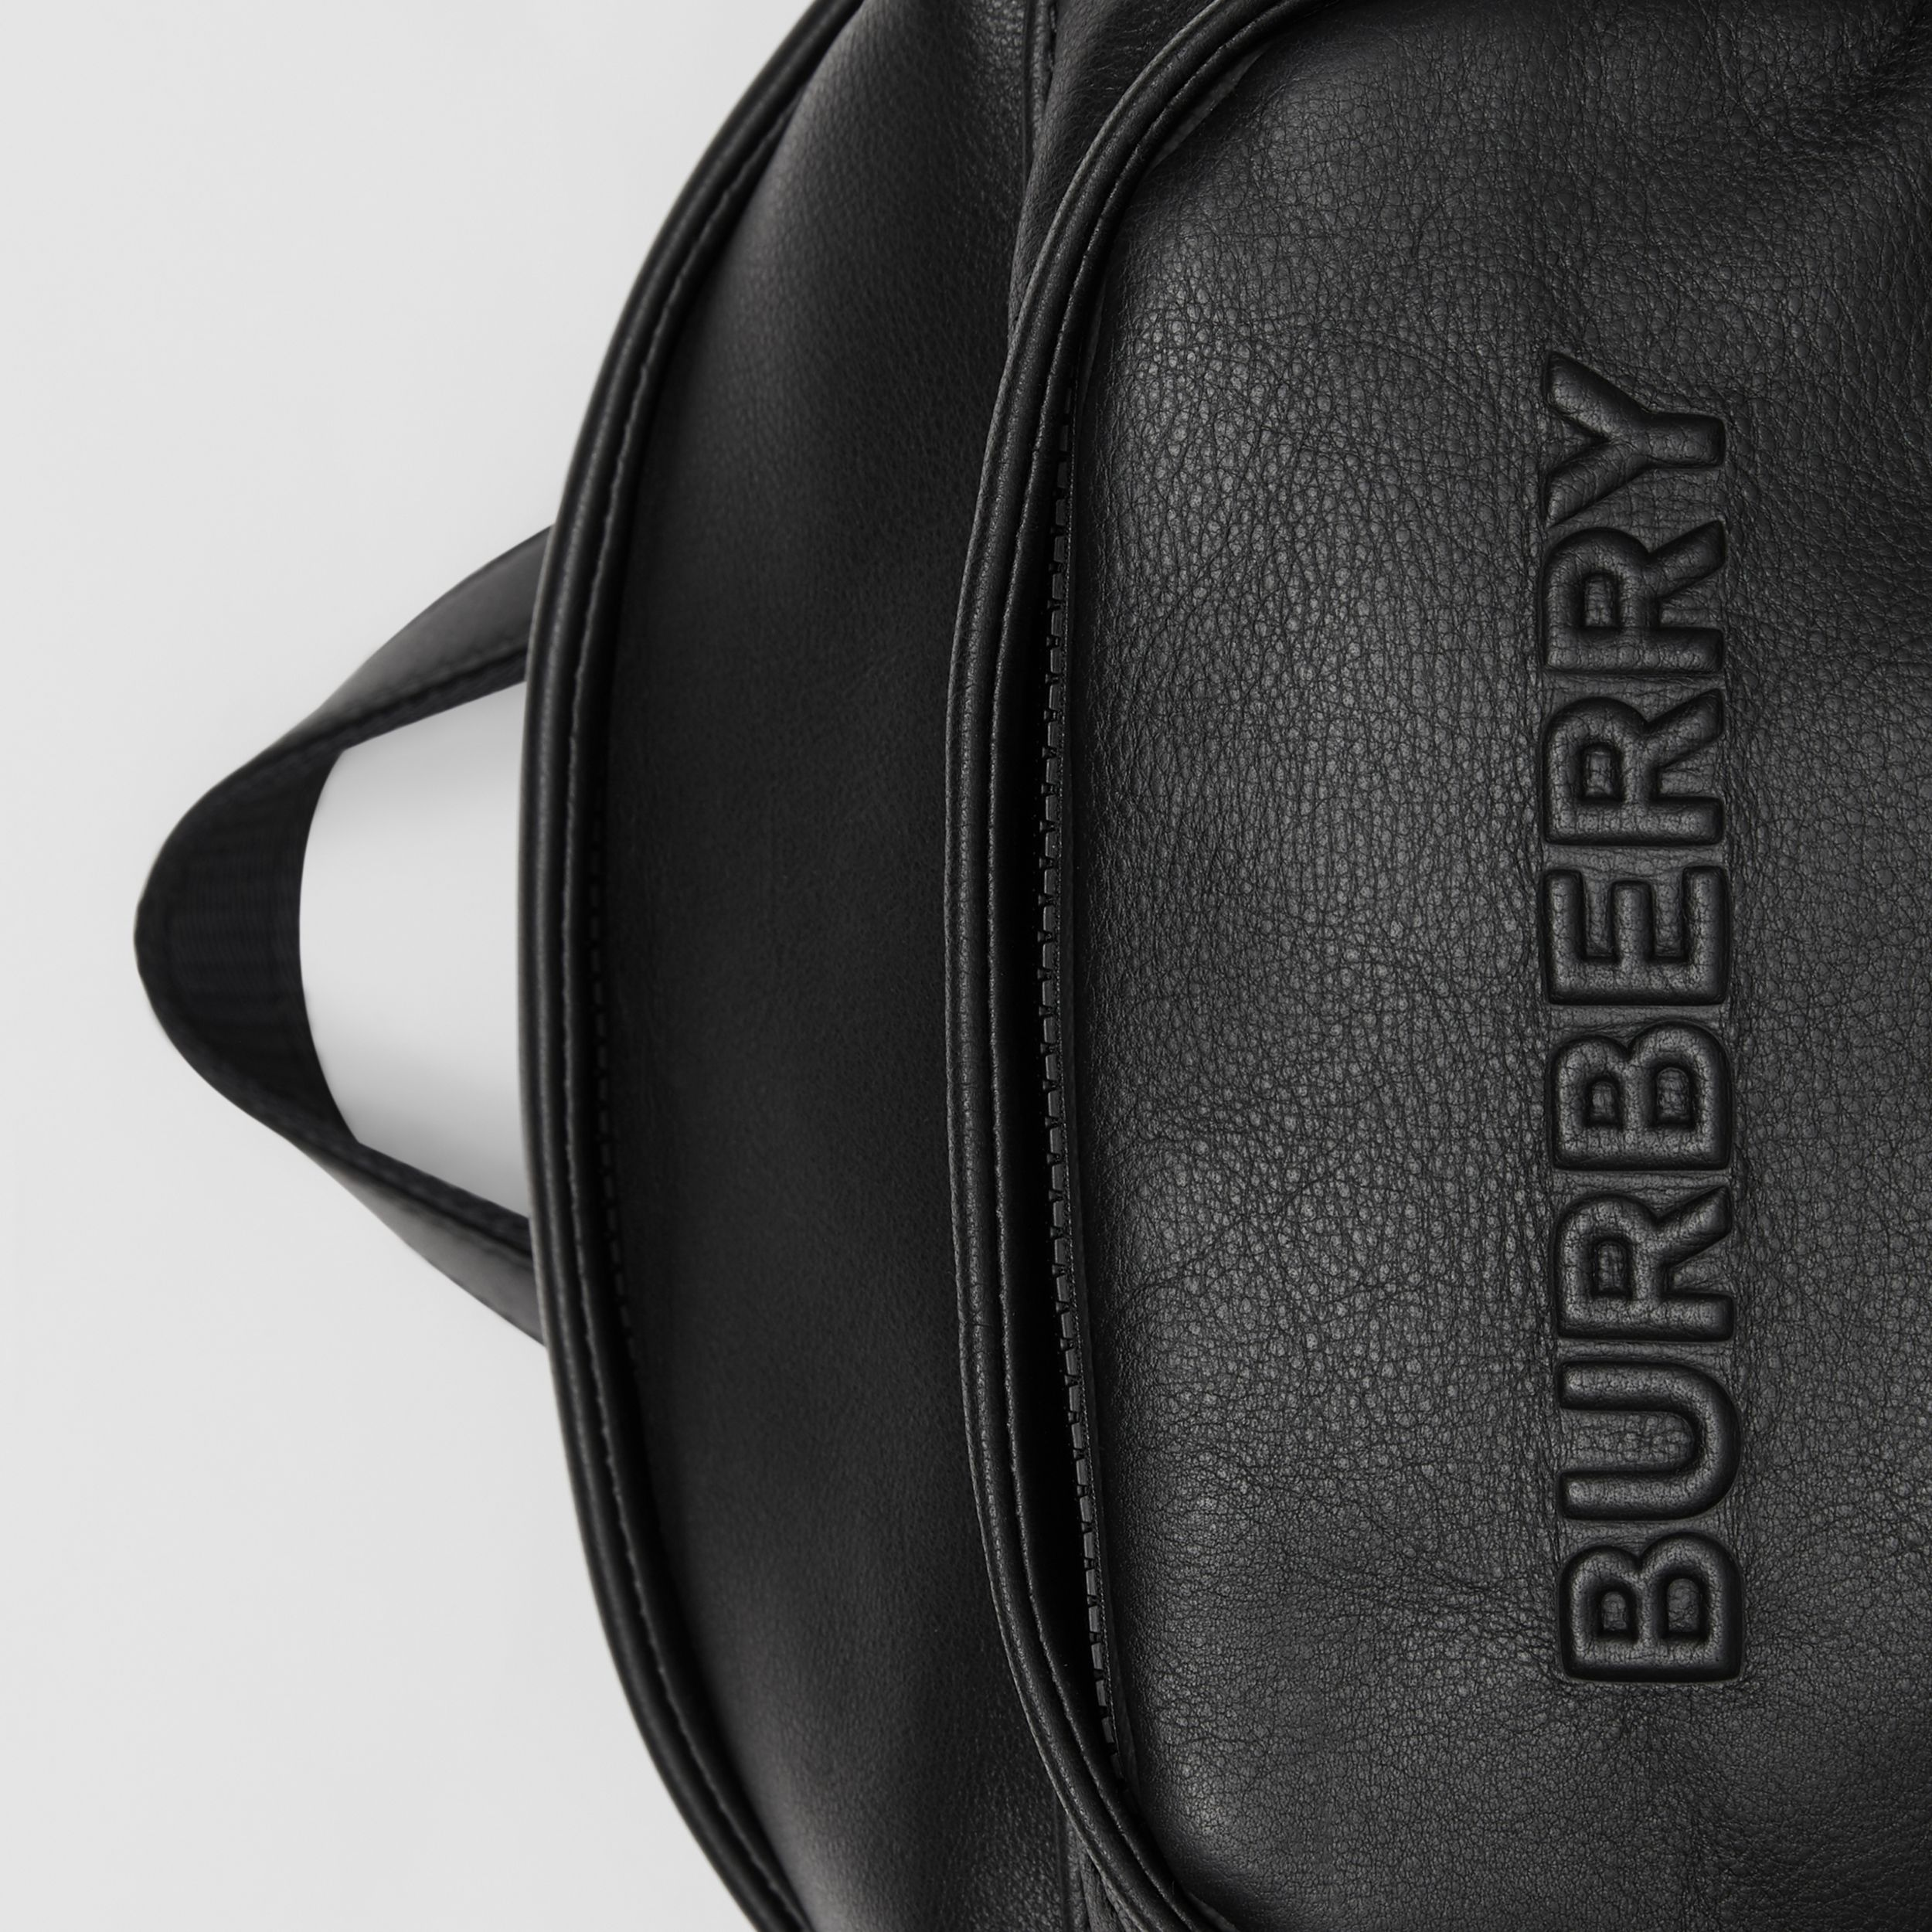 Large Logo Embossed Leather Backpack in Black - Men | Burberry United States - 2